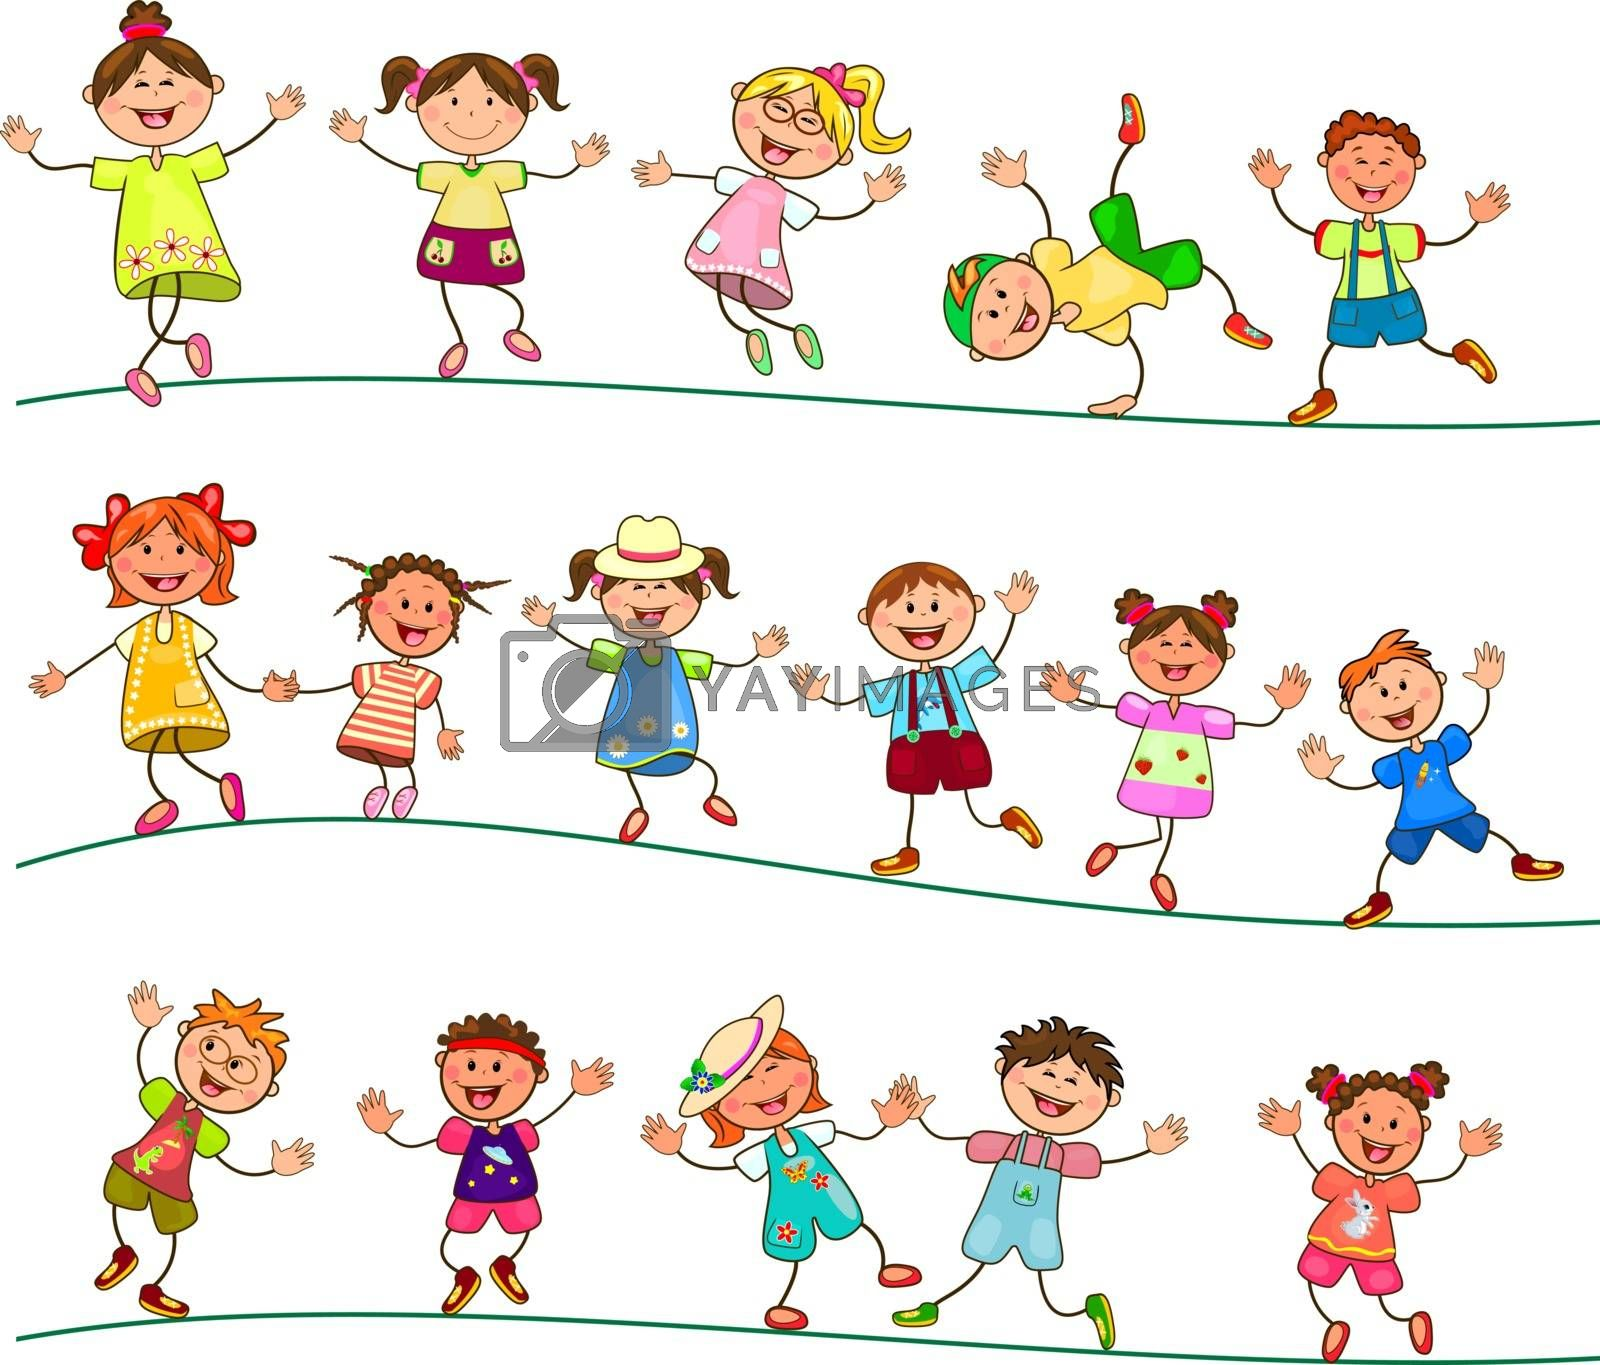 Group of cheerful, smiling children on a white background. Cartoon joyful children. Group of happy, smiling children.